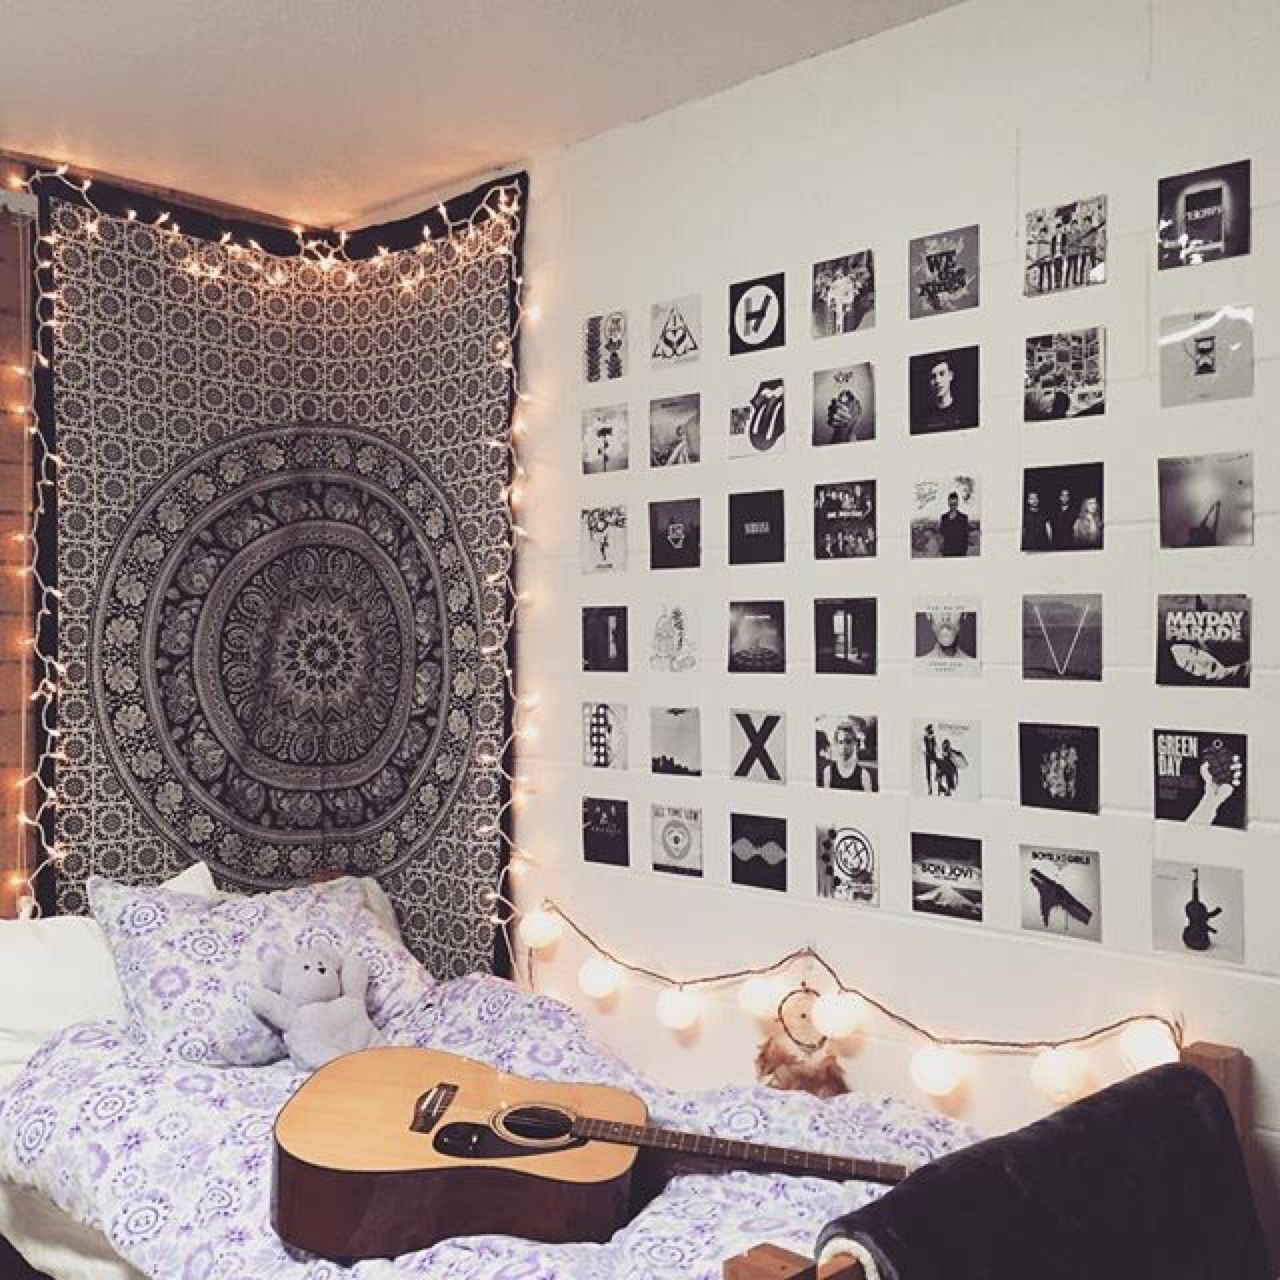 Source Myroomspo Tapestry Bedroom Tumblr Bedroom